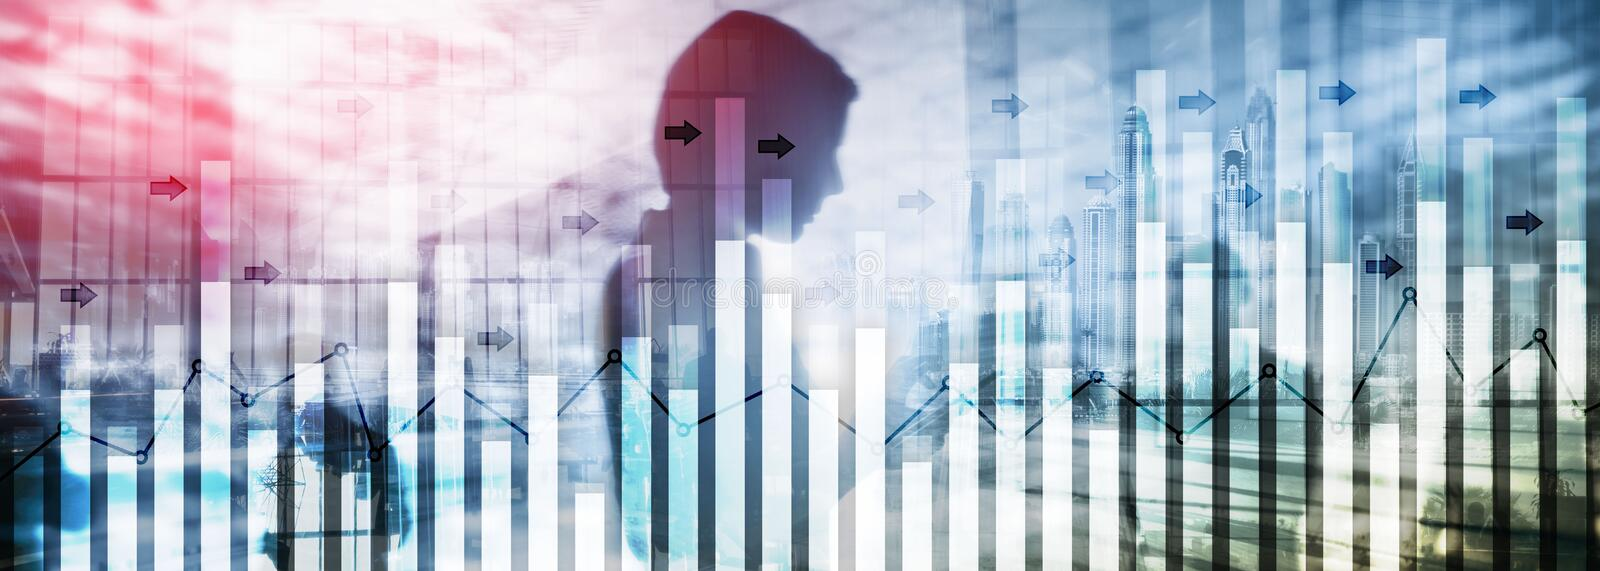 Investment trading financial analysing forex currency economy growth abstract background business people modern city.  stock image